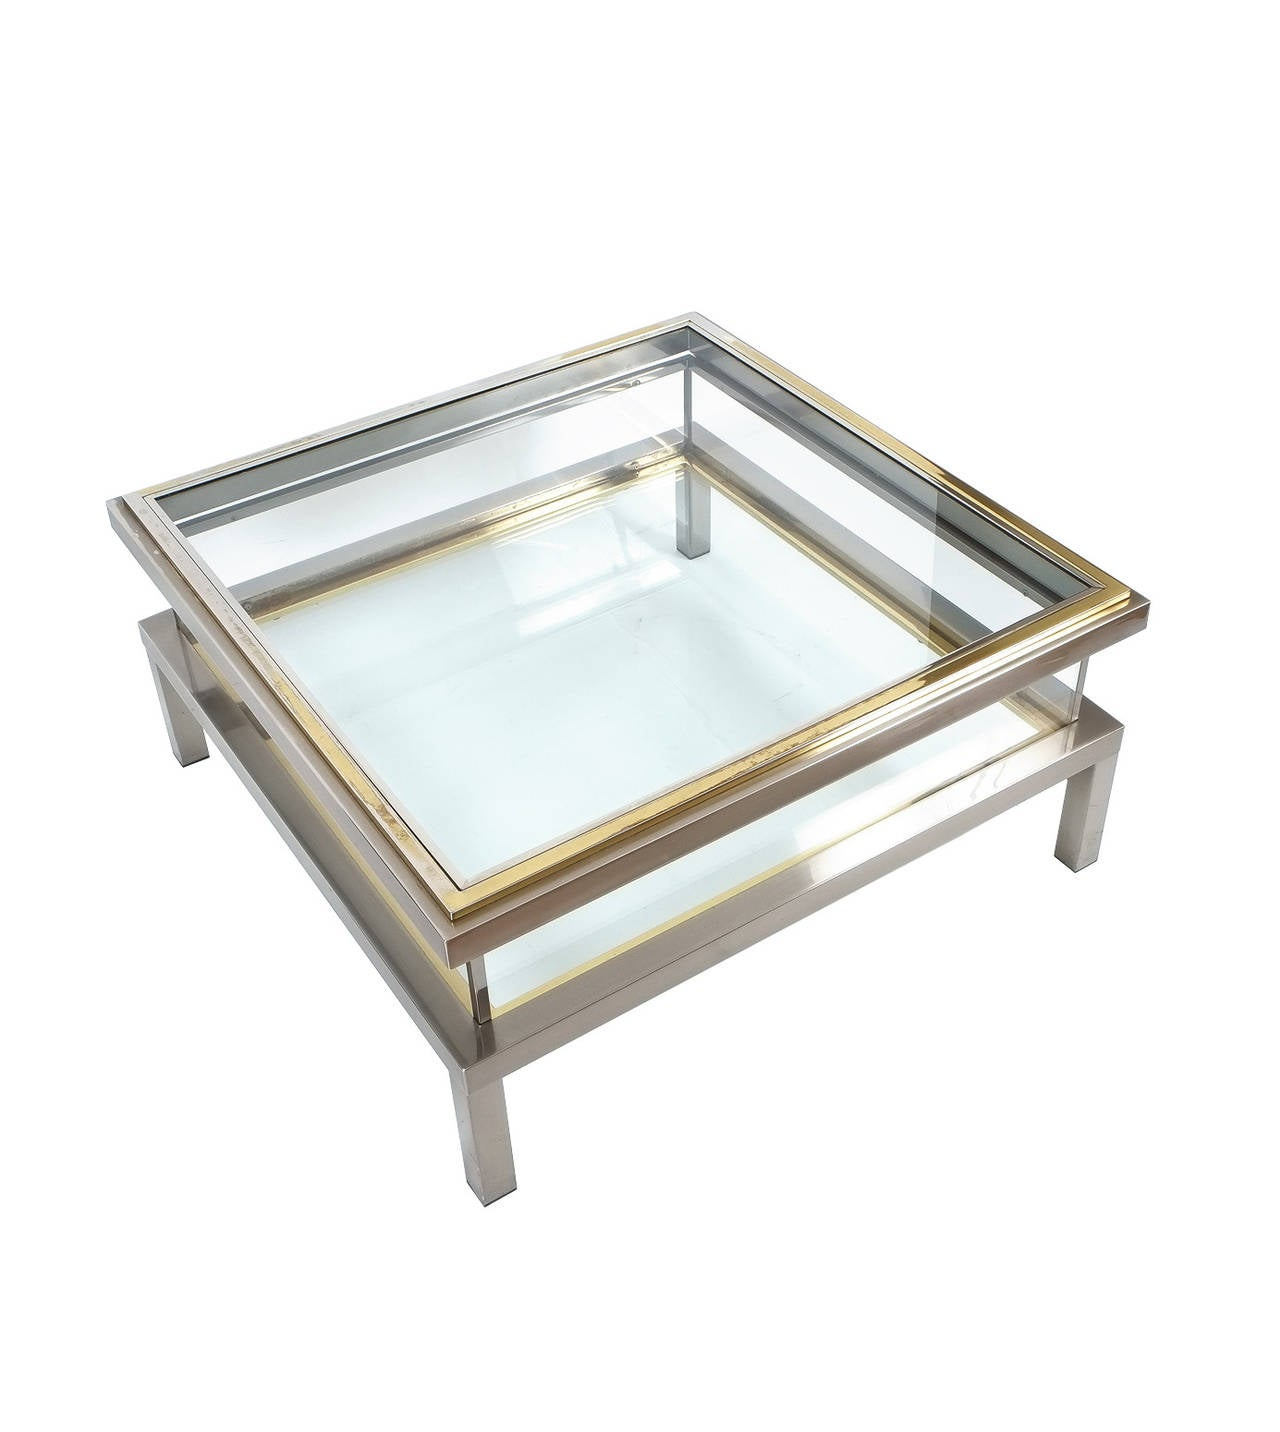 Elegant romeo rega brass and chrome coffee table with for Designer cocktail tables glass